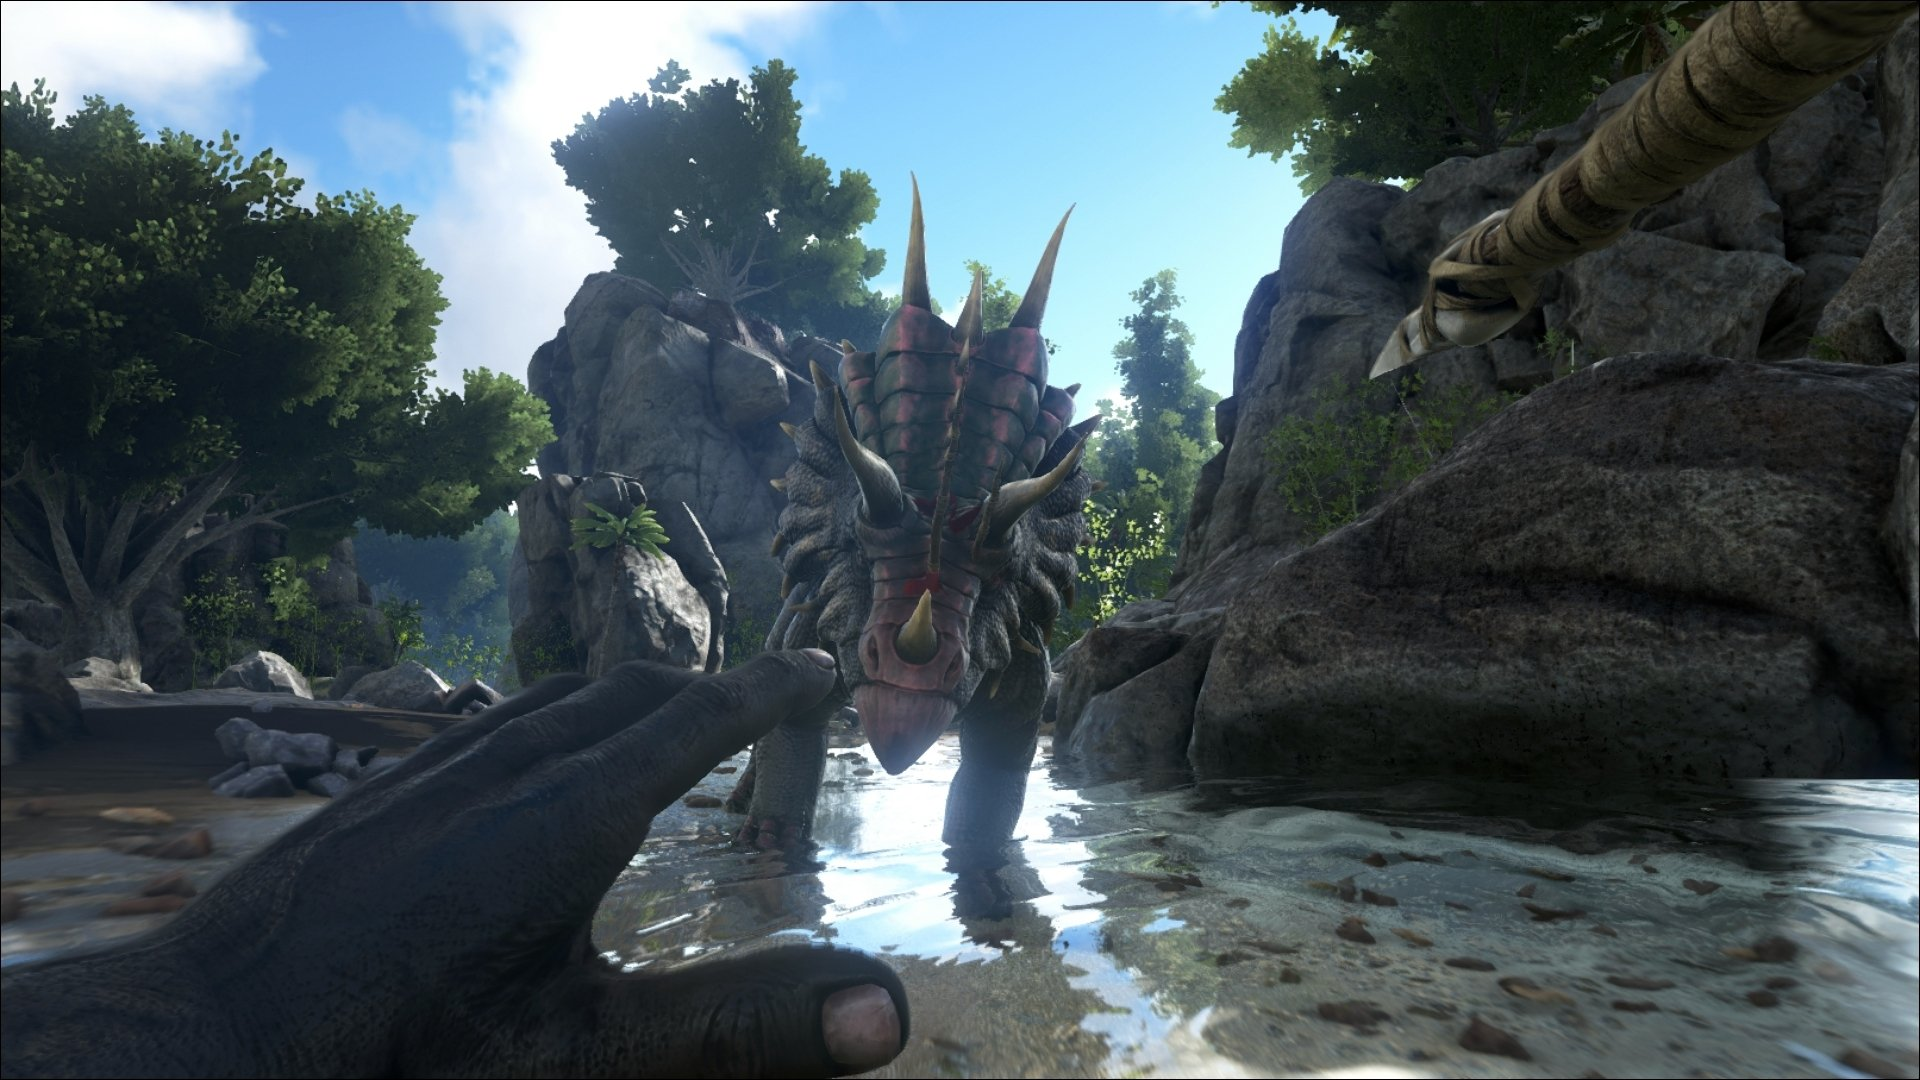 ark survival evolved pc download windows 10 free